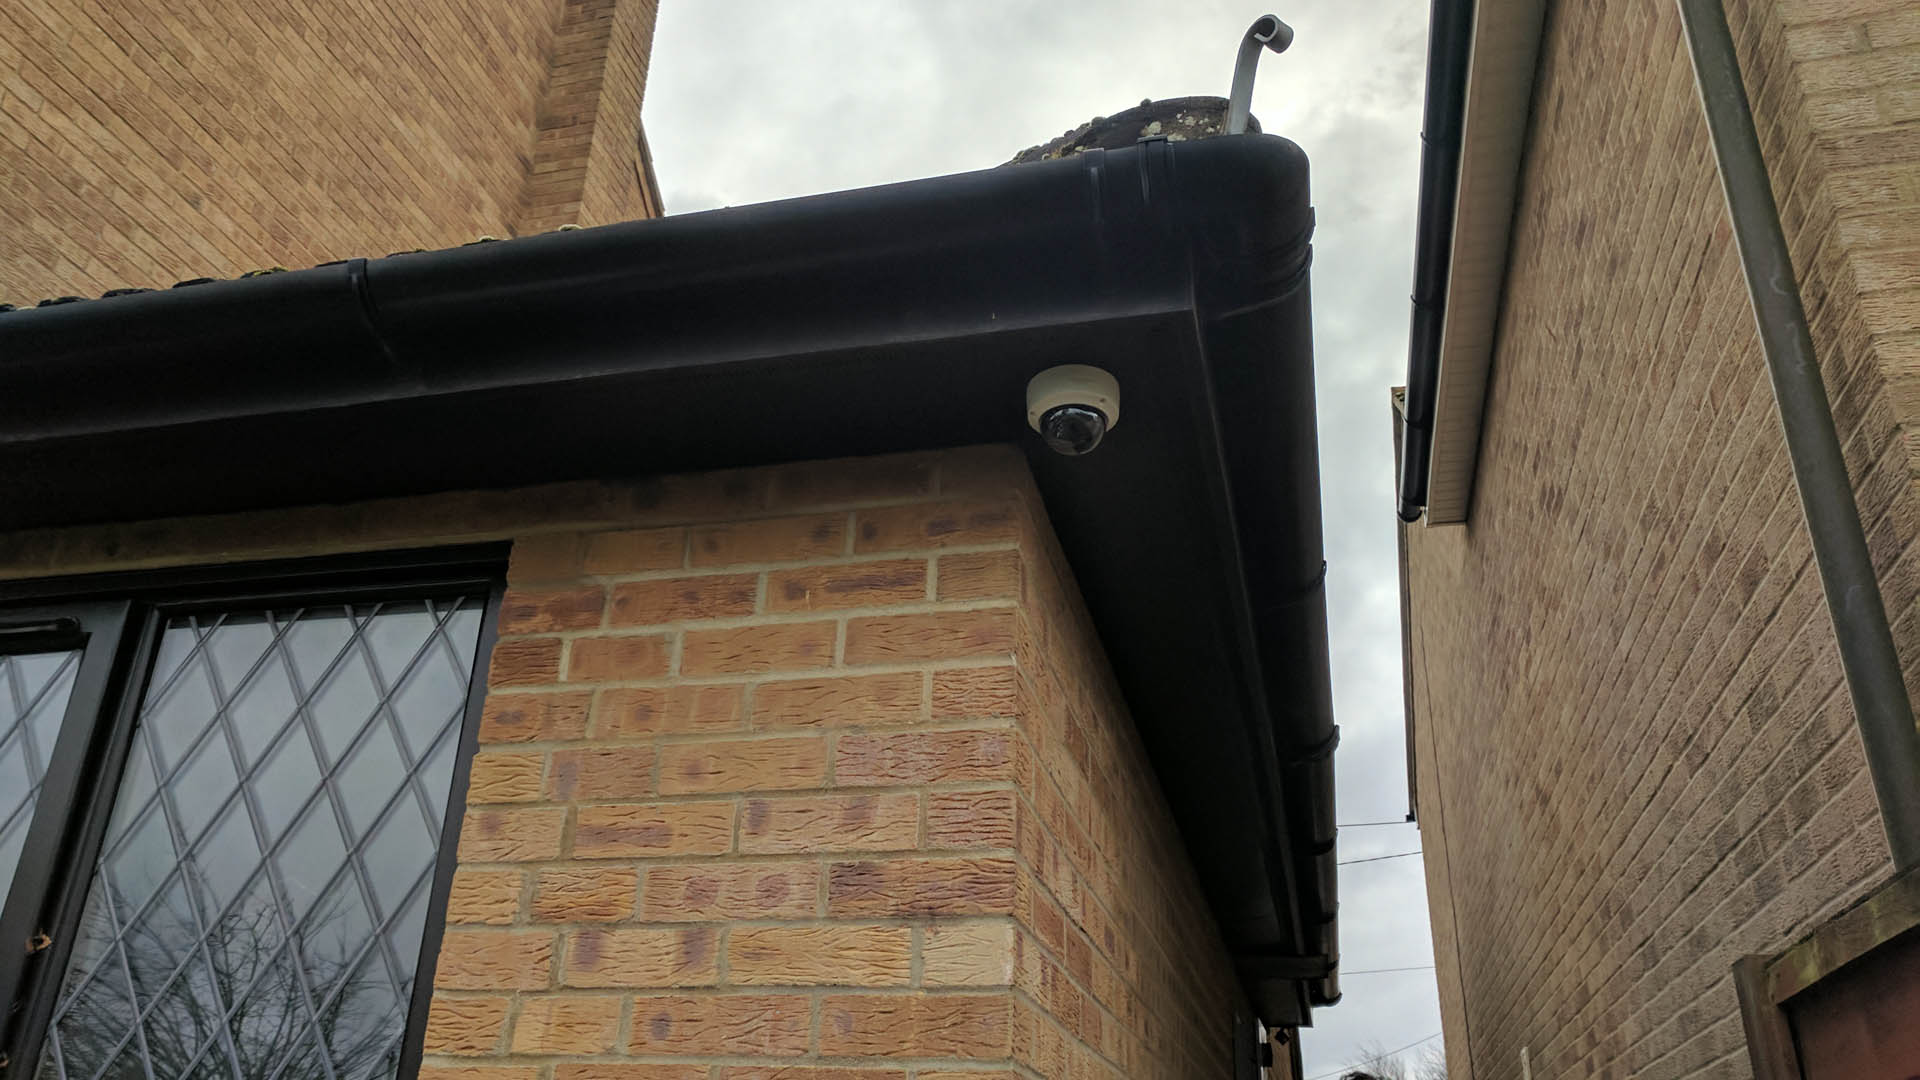 CCTV Installation in Braintree